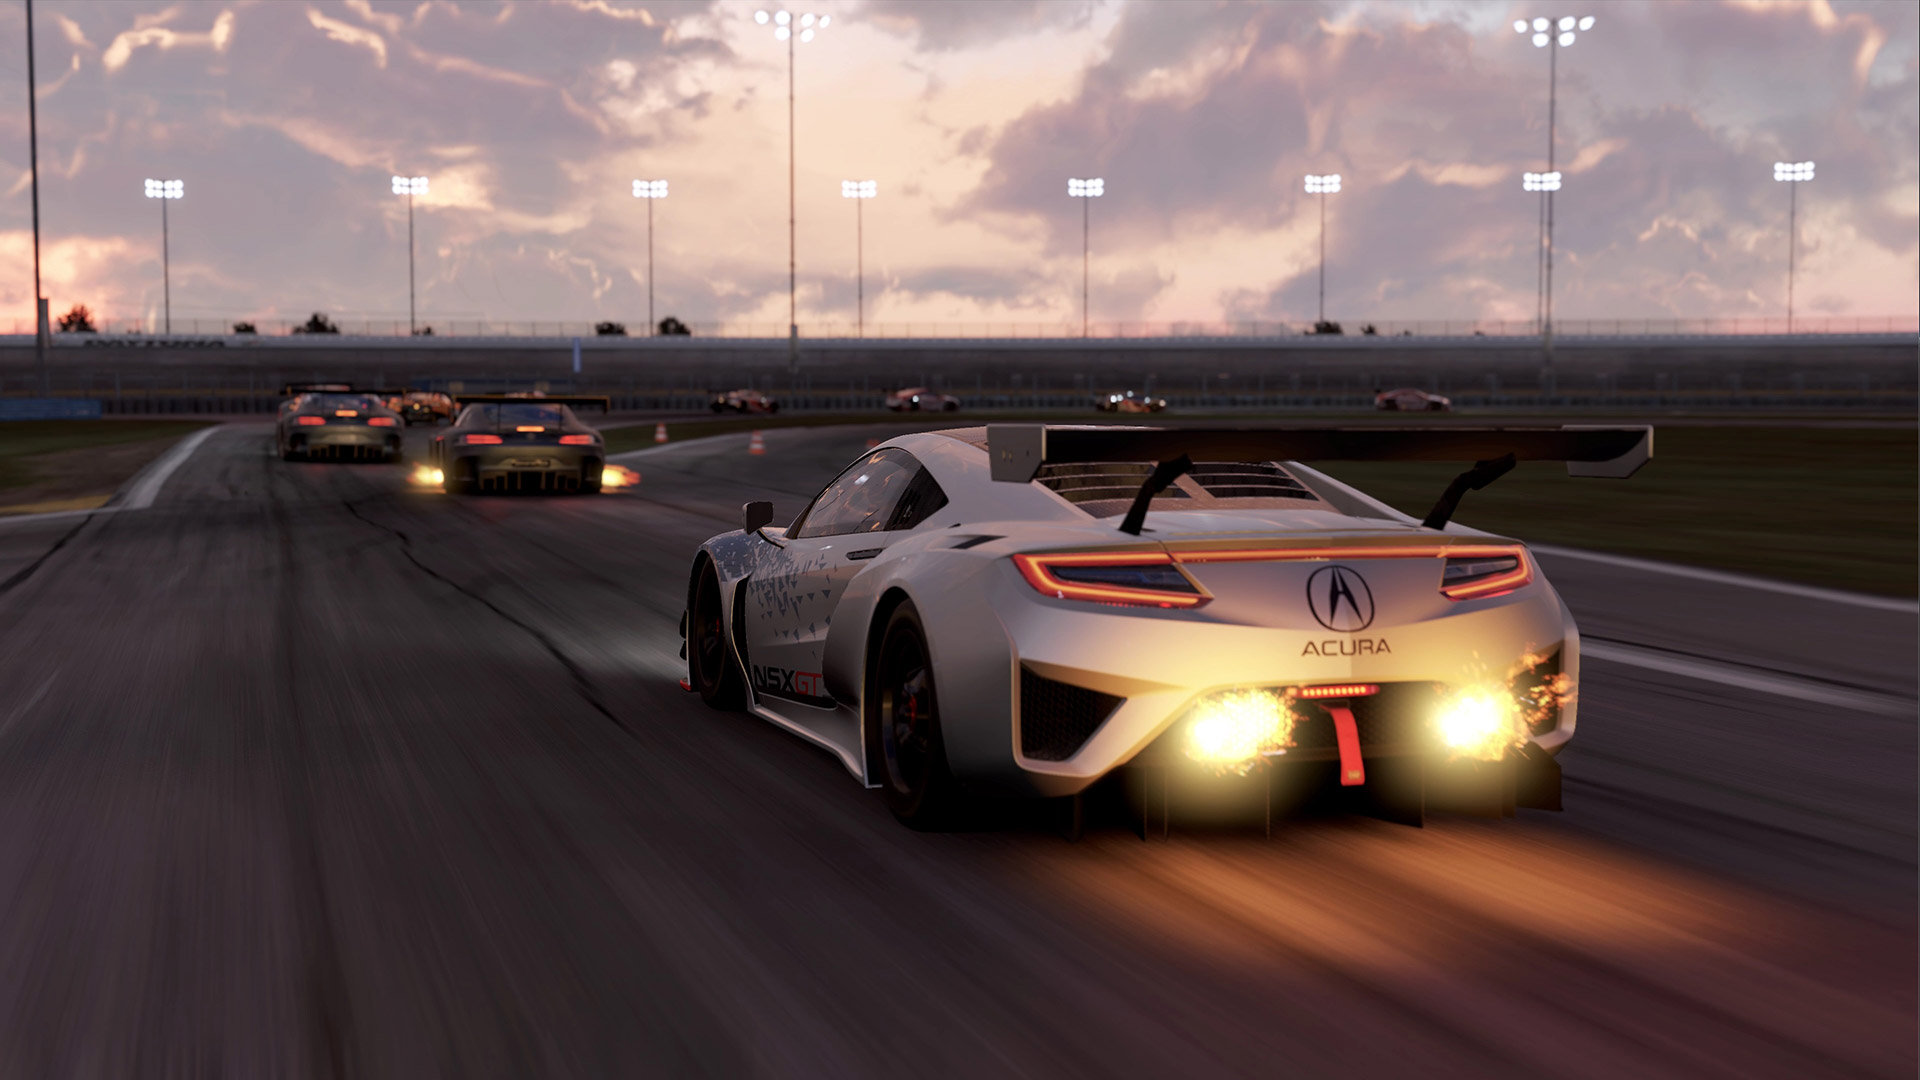 Project-Cars-2-Oculus-Rift-HTC-Vive-PlayStation-VR-Xbox-One-VR